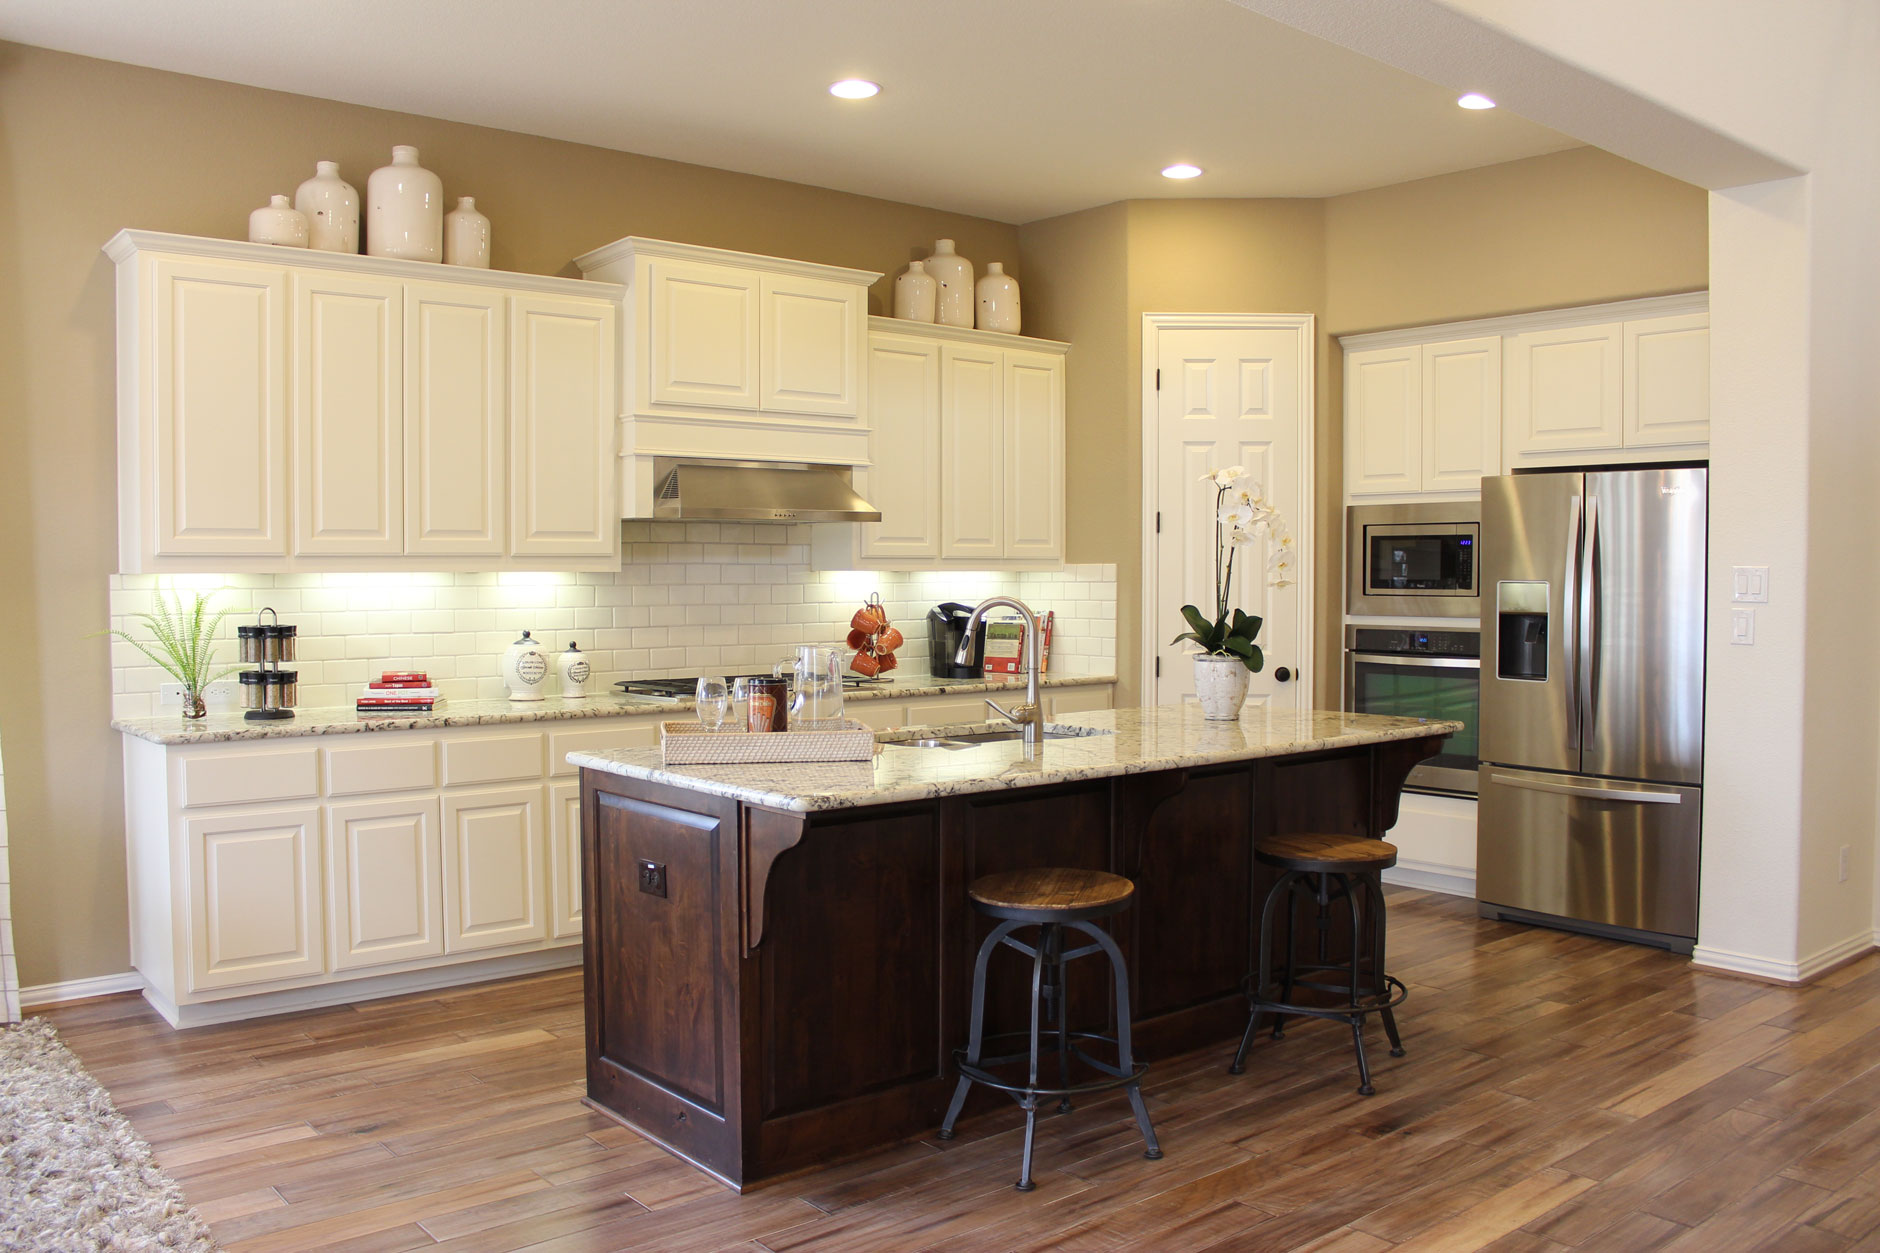 Kitchen Cabinet Colors choose flooring that compliments cabinet color - burrows cabinets